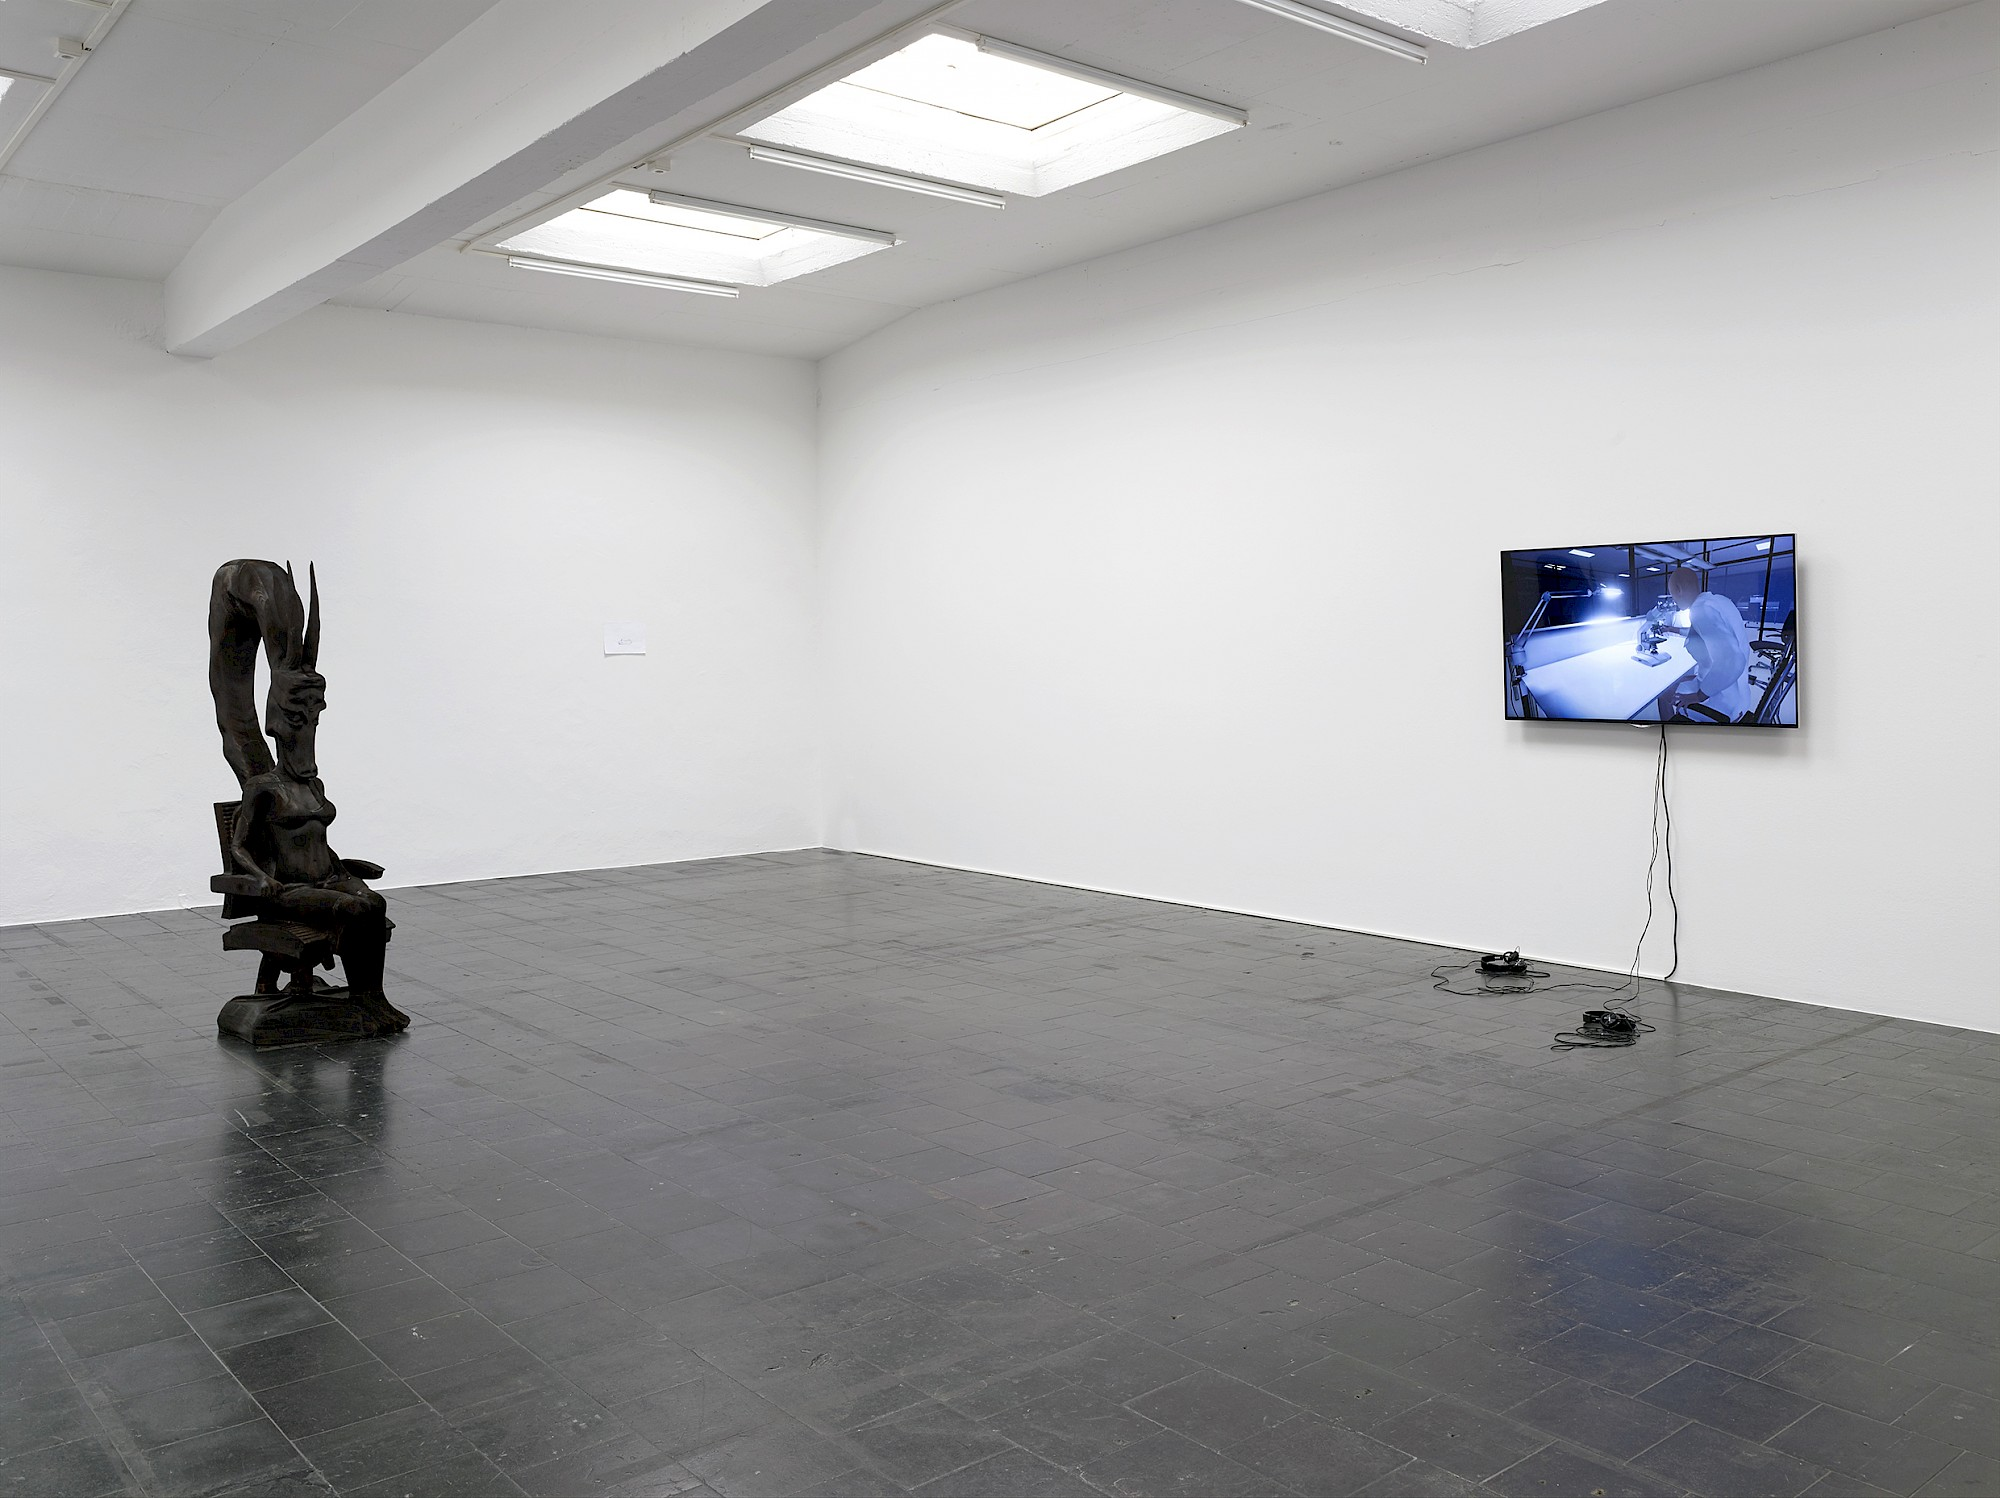 Installation view, Temporary Gallery, Cologne